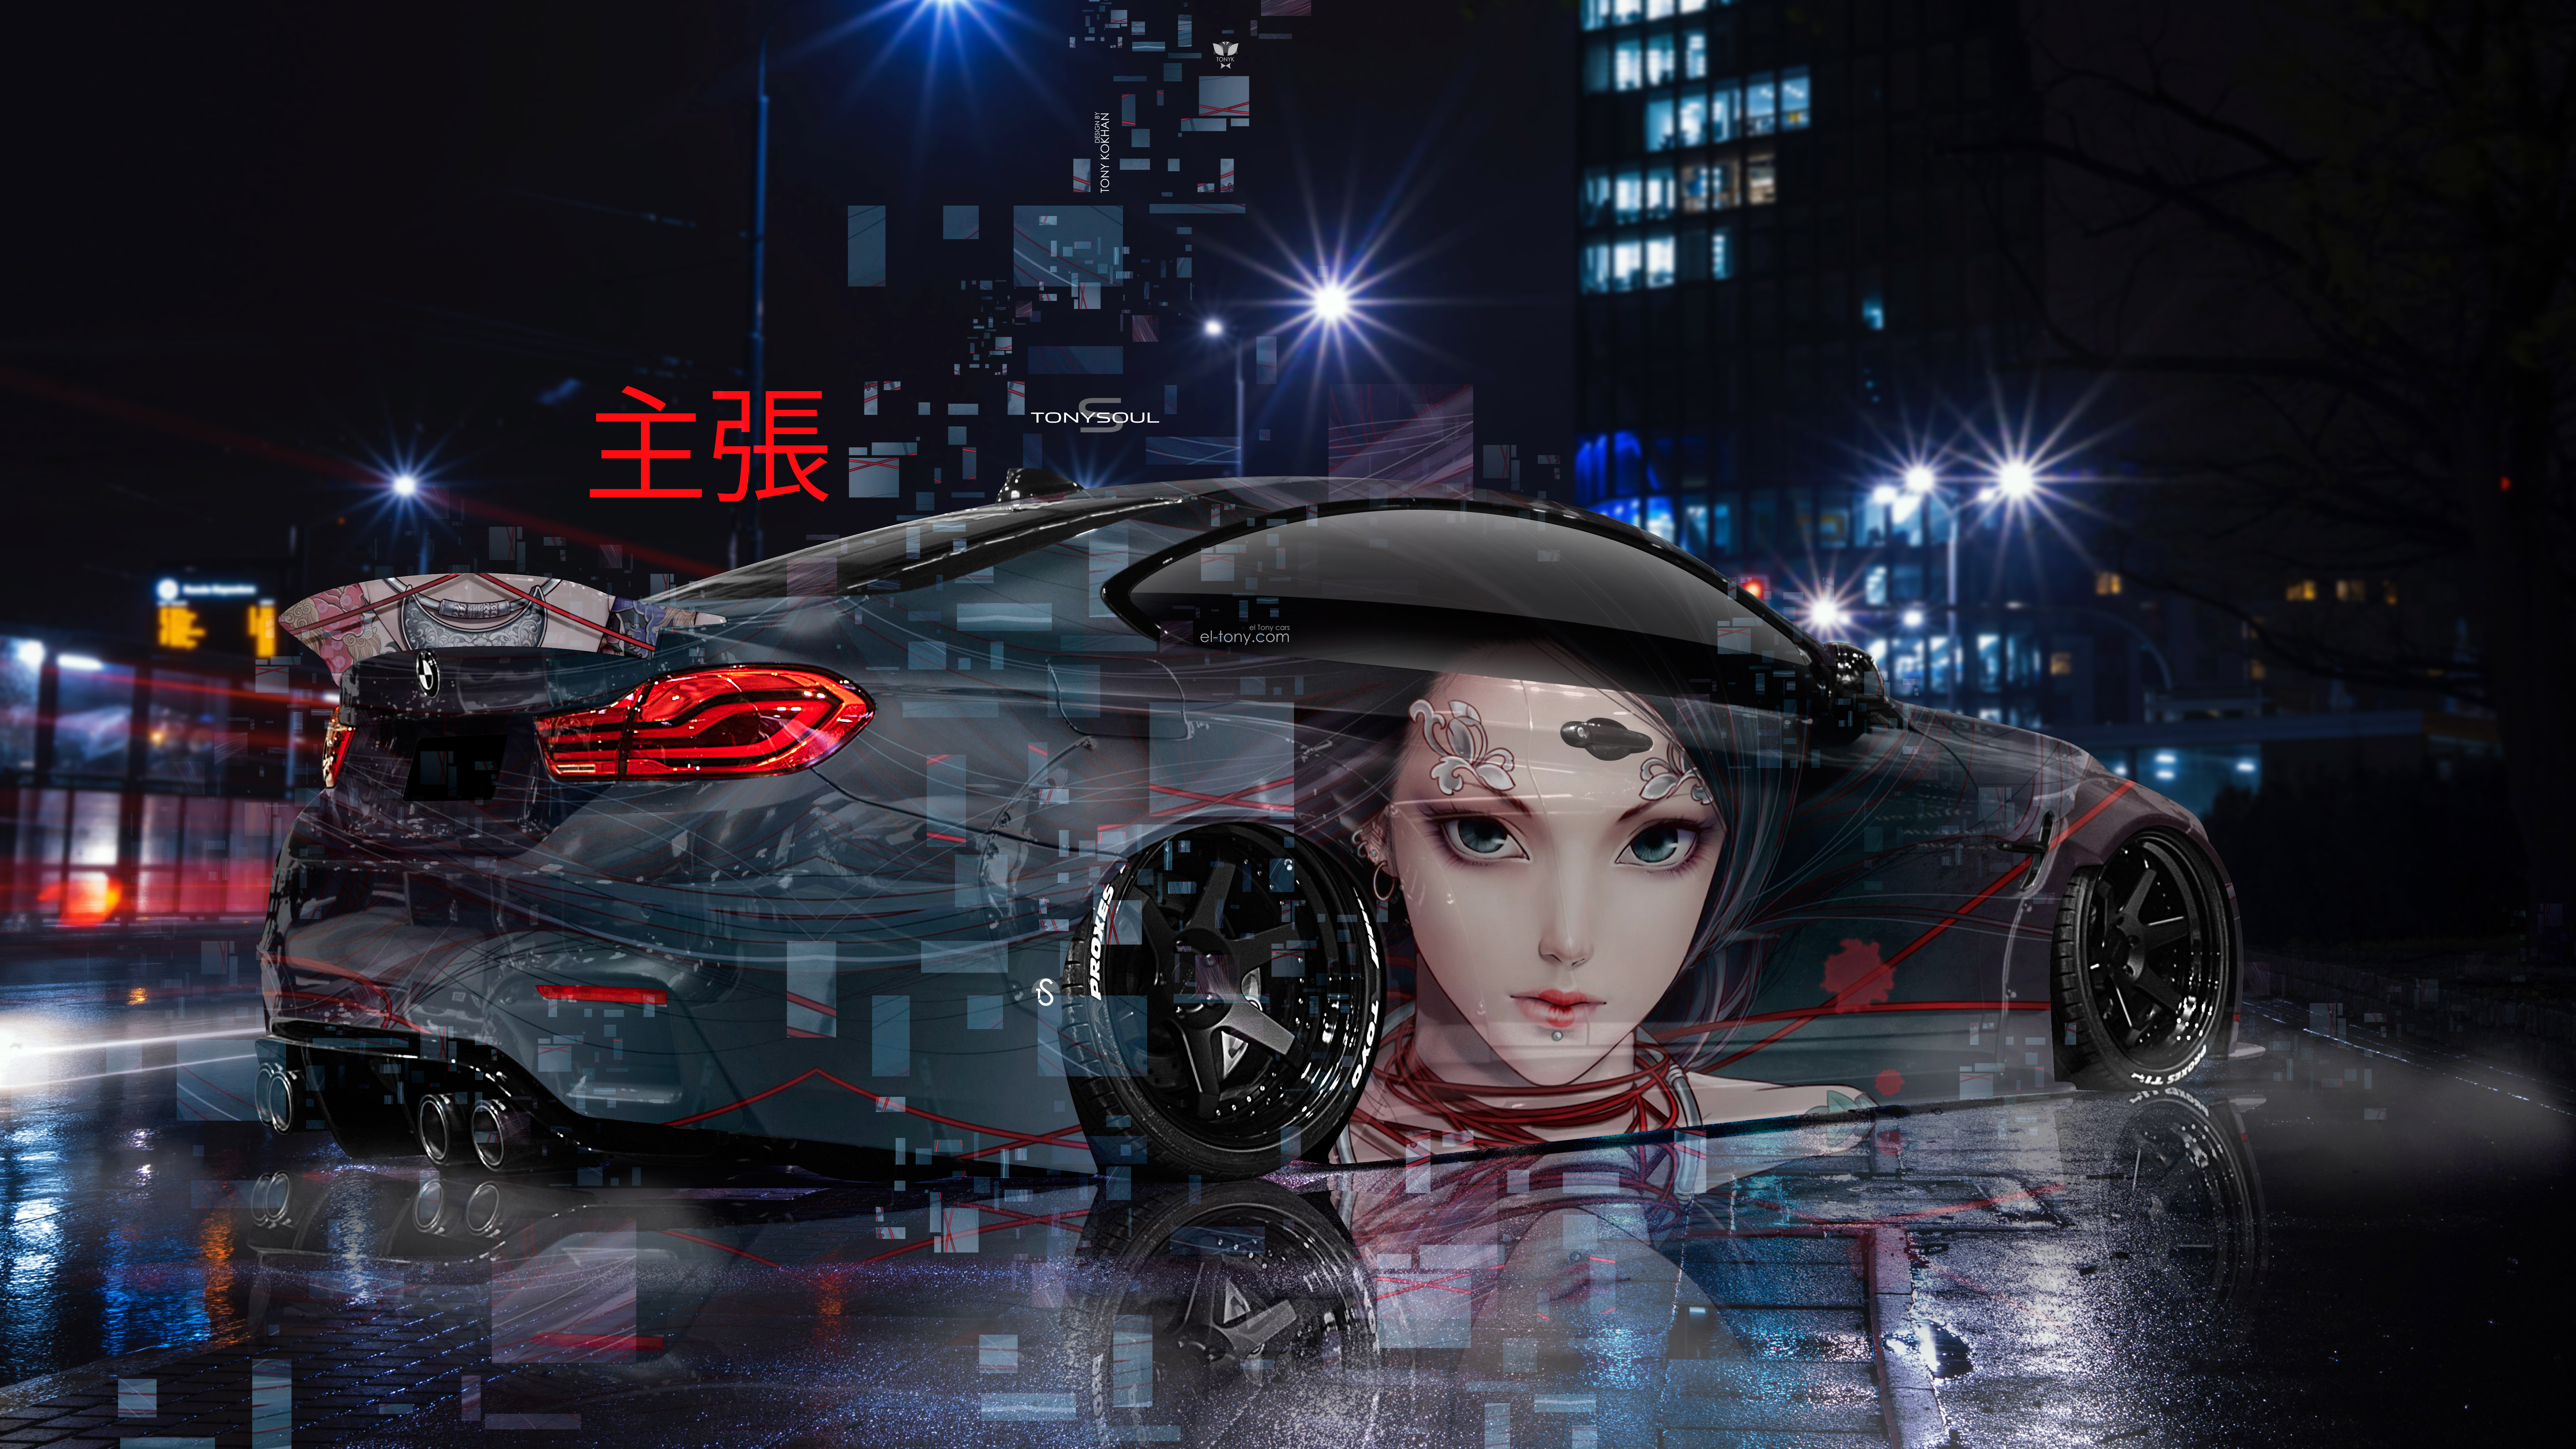 BMW-M4-F82-Tuning-Back-3D-Super-Anime-Girl-Claim-Aerography-Japanese-Hieroglyph-Night-City-Art-Car-2019-Multicolors-8K-Wallpapers-design-by-Tony-Kokhan-www.el-tony.com-image